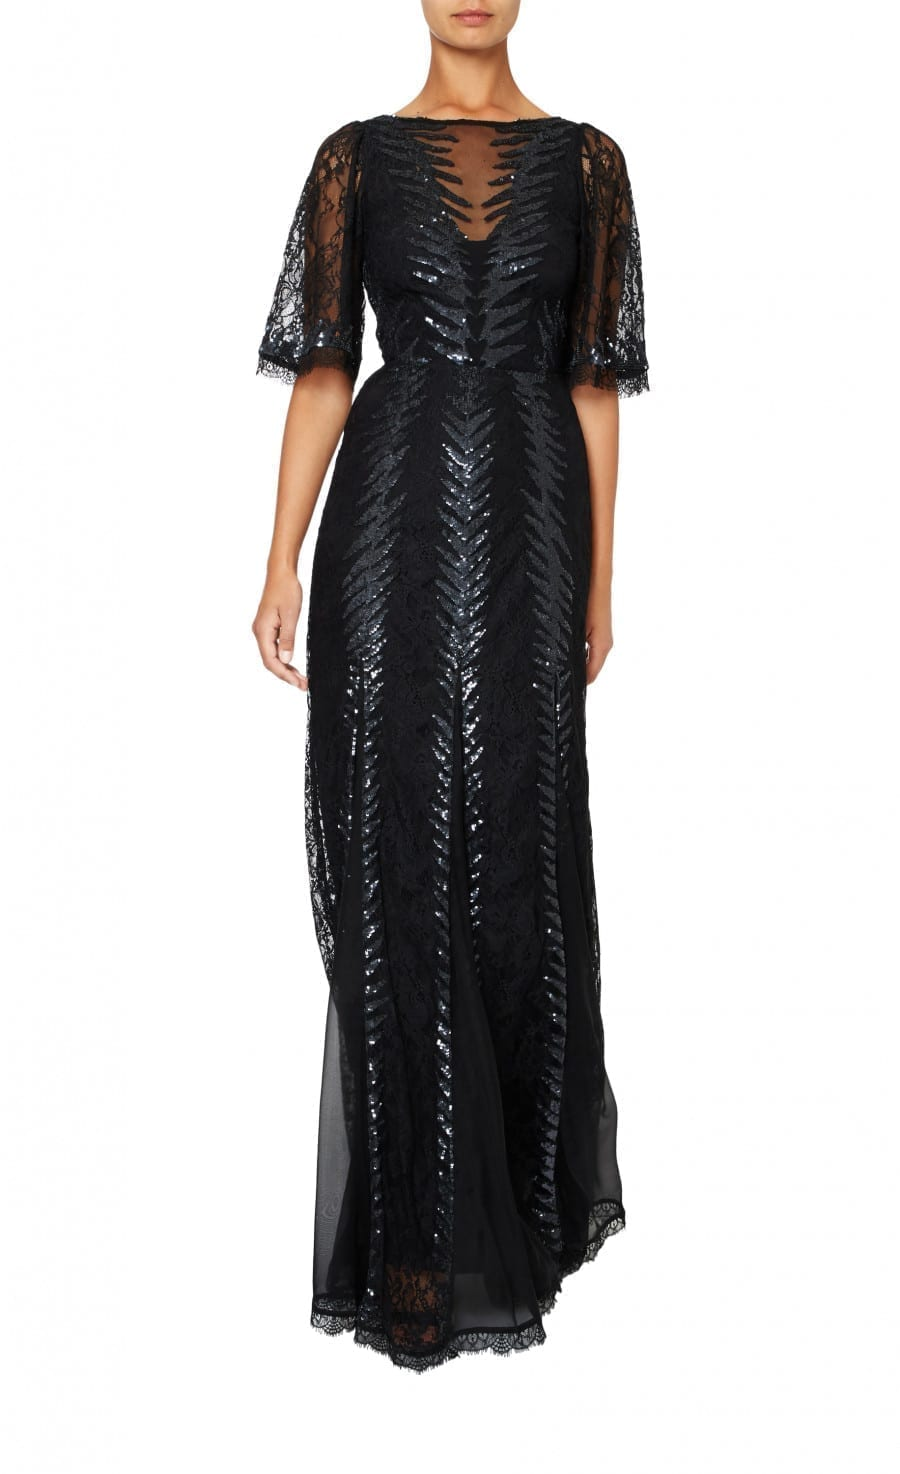 TEMPERLEY LONDON Panther Lace Black Dress